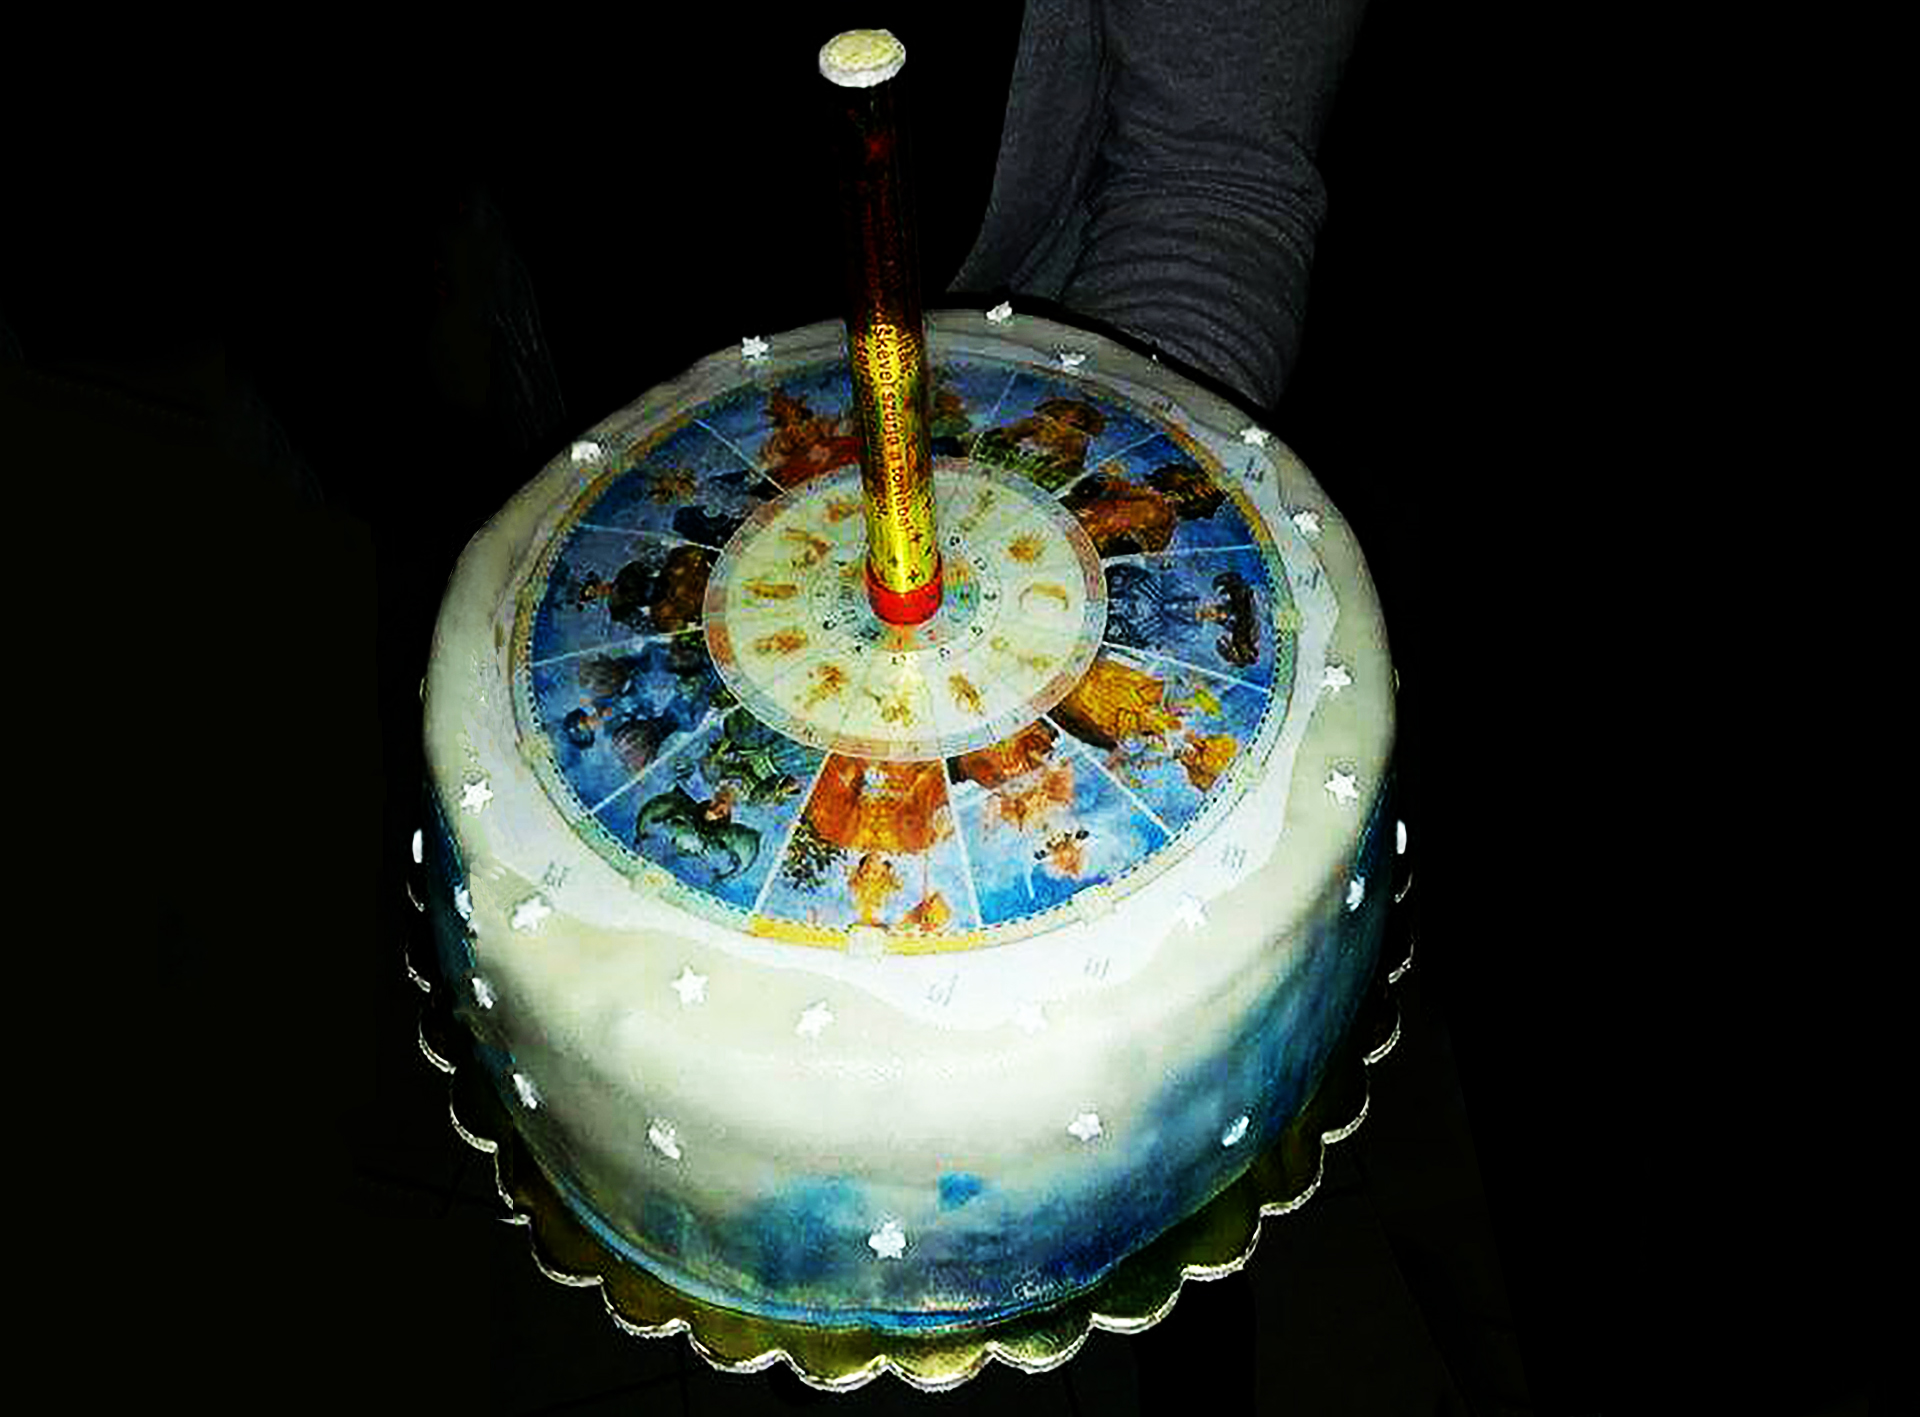 horoscope cake4